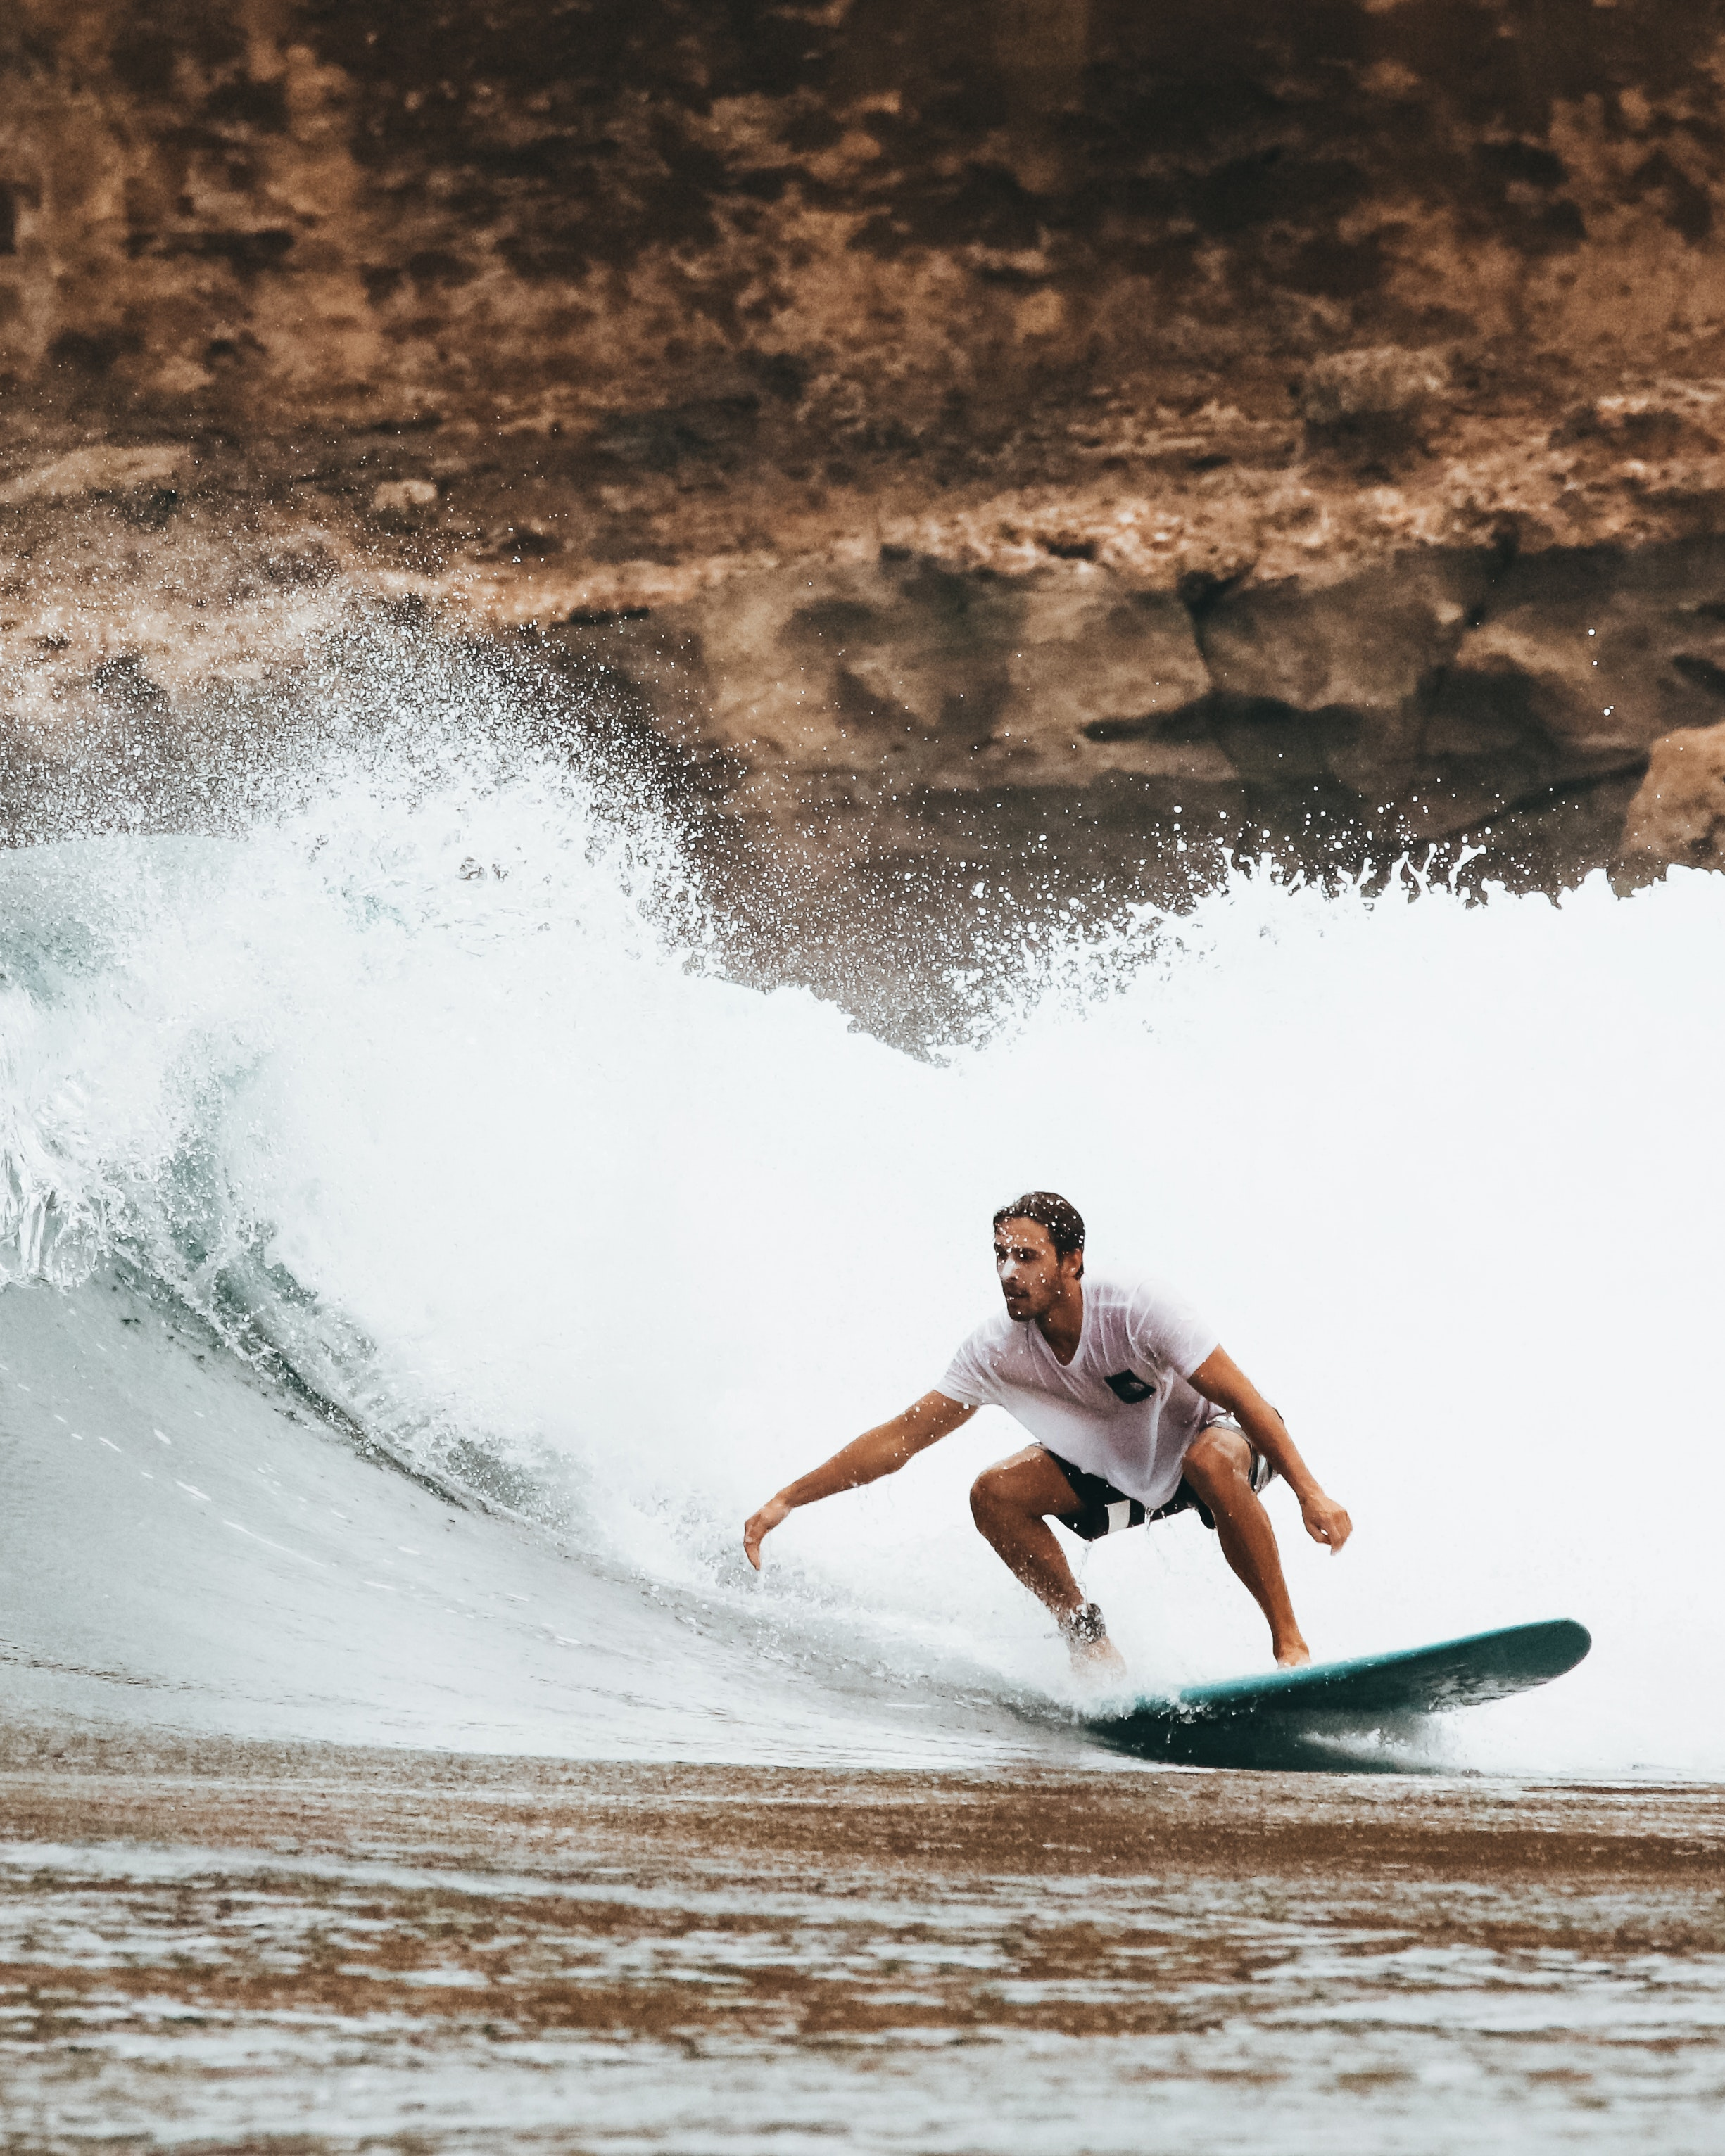 Some Important Tactics That Novice Surfers Should Learn From Professional Surfers